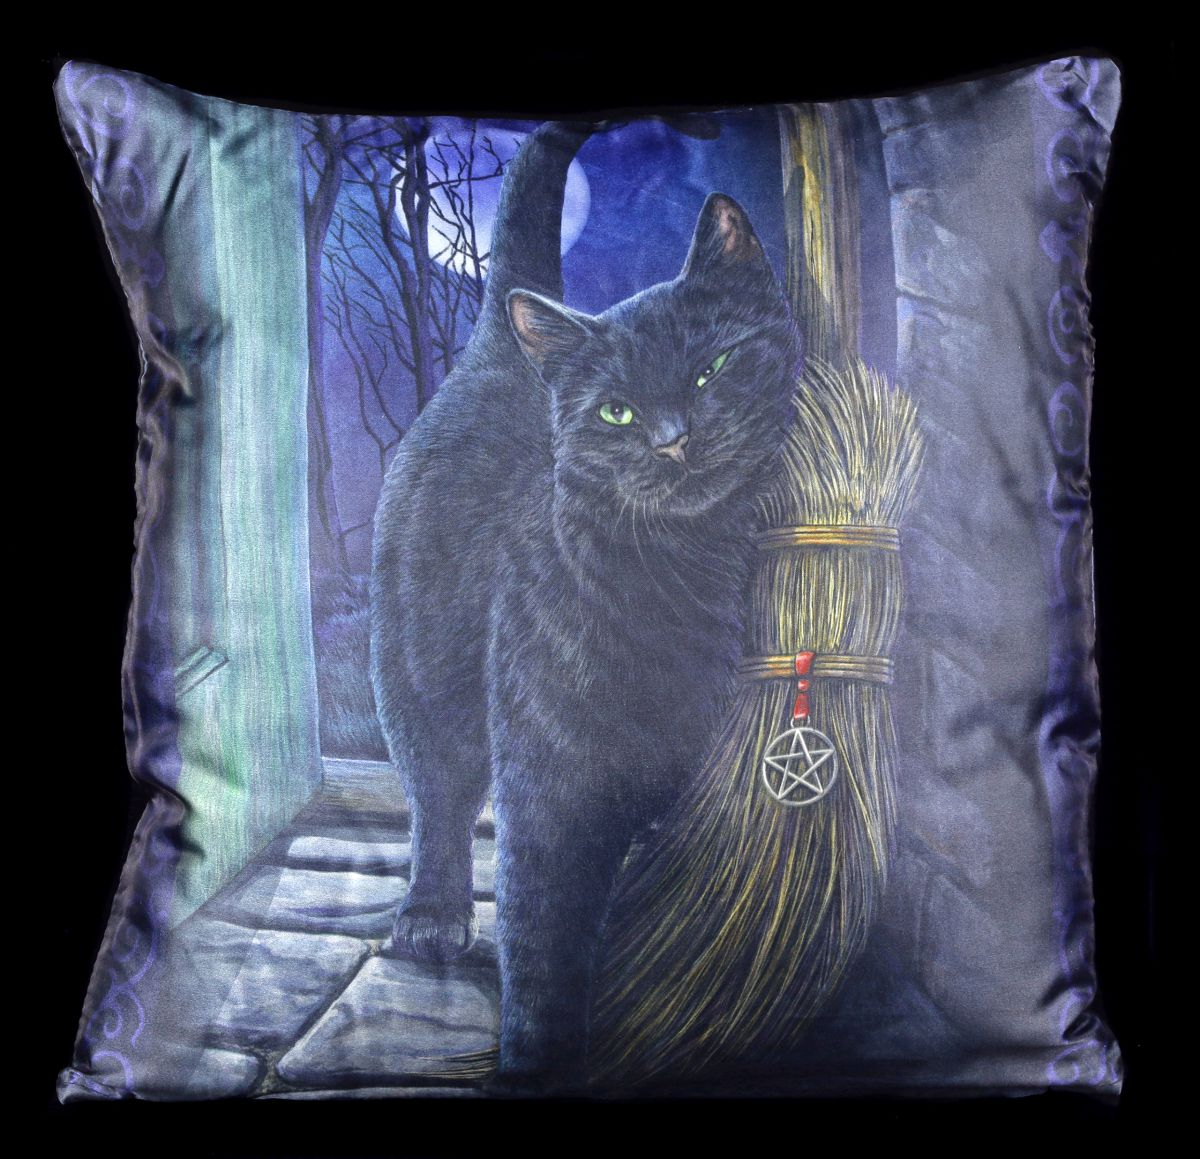 kissen mit katze a brush with magic fantasy dekokissen lisa parker ebay. Black Bedroom Furniture Sets. Home Design Ideas